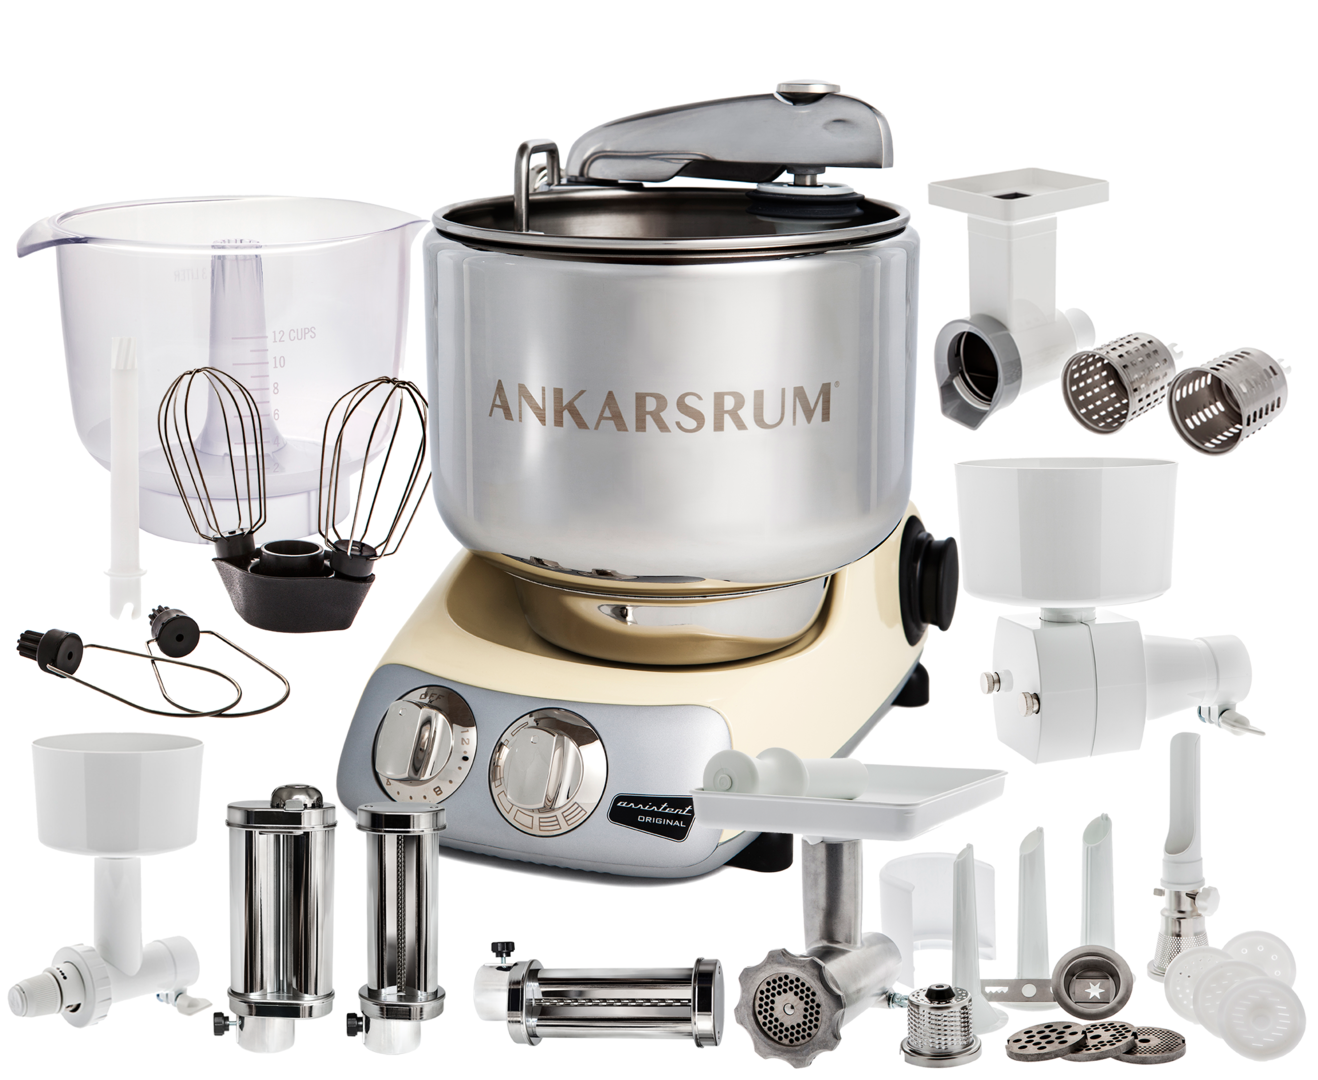 Ankarsrum Original AKM6220B Total mixer, Creme (2300106)